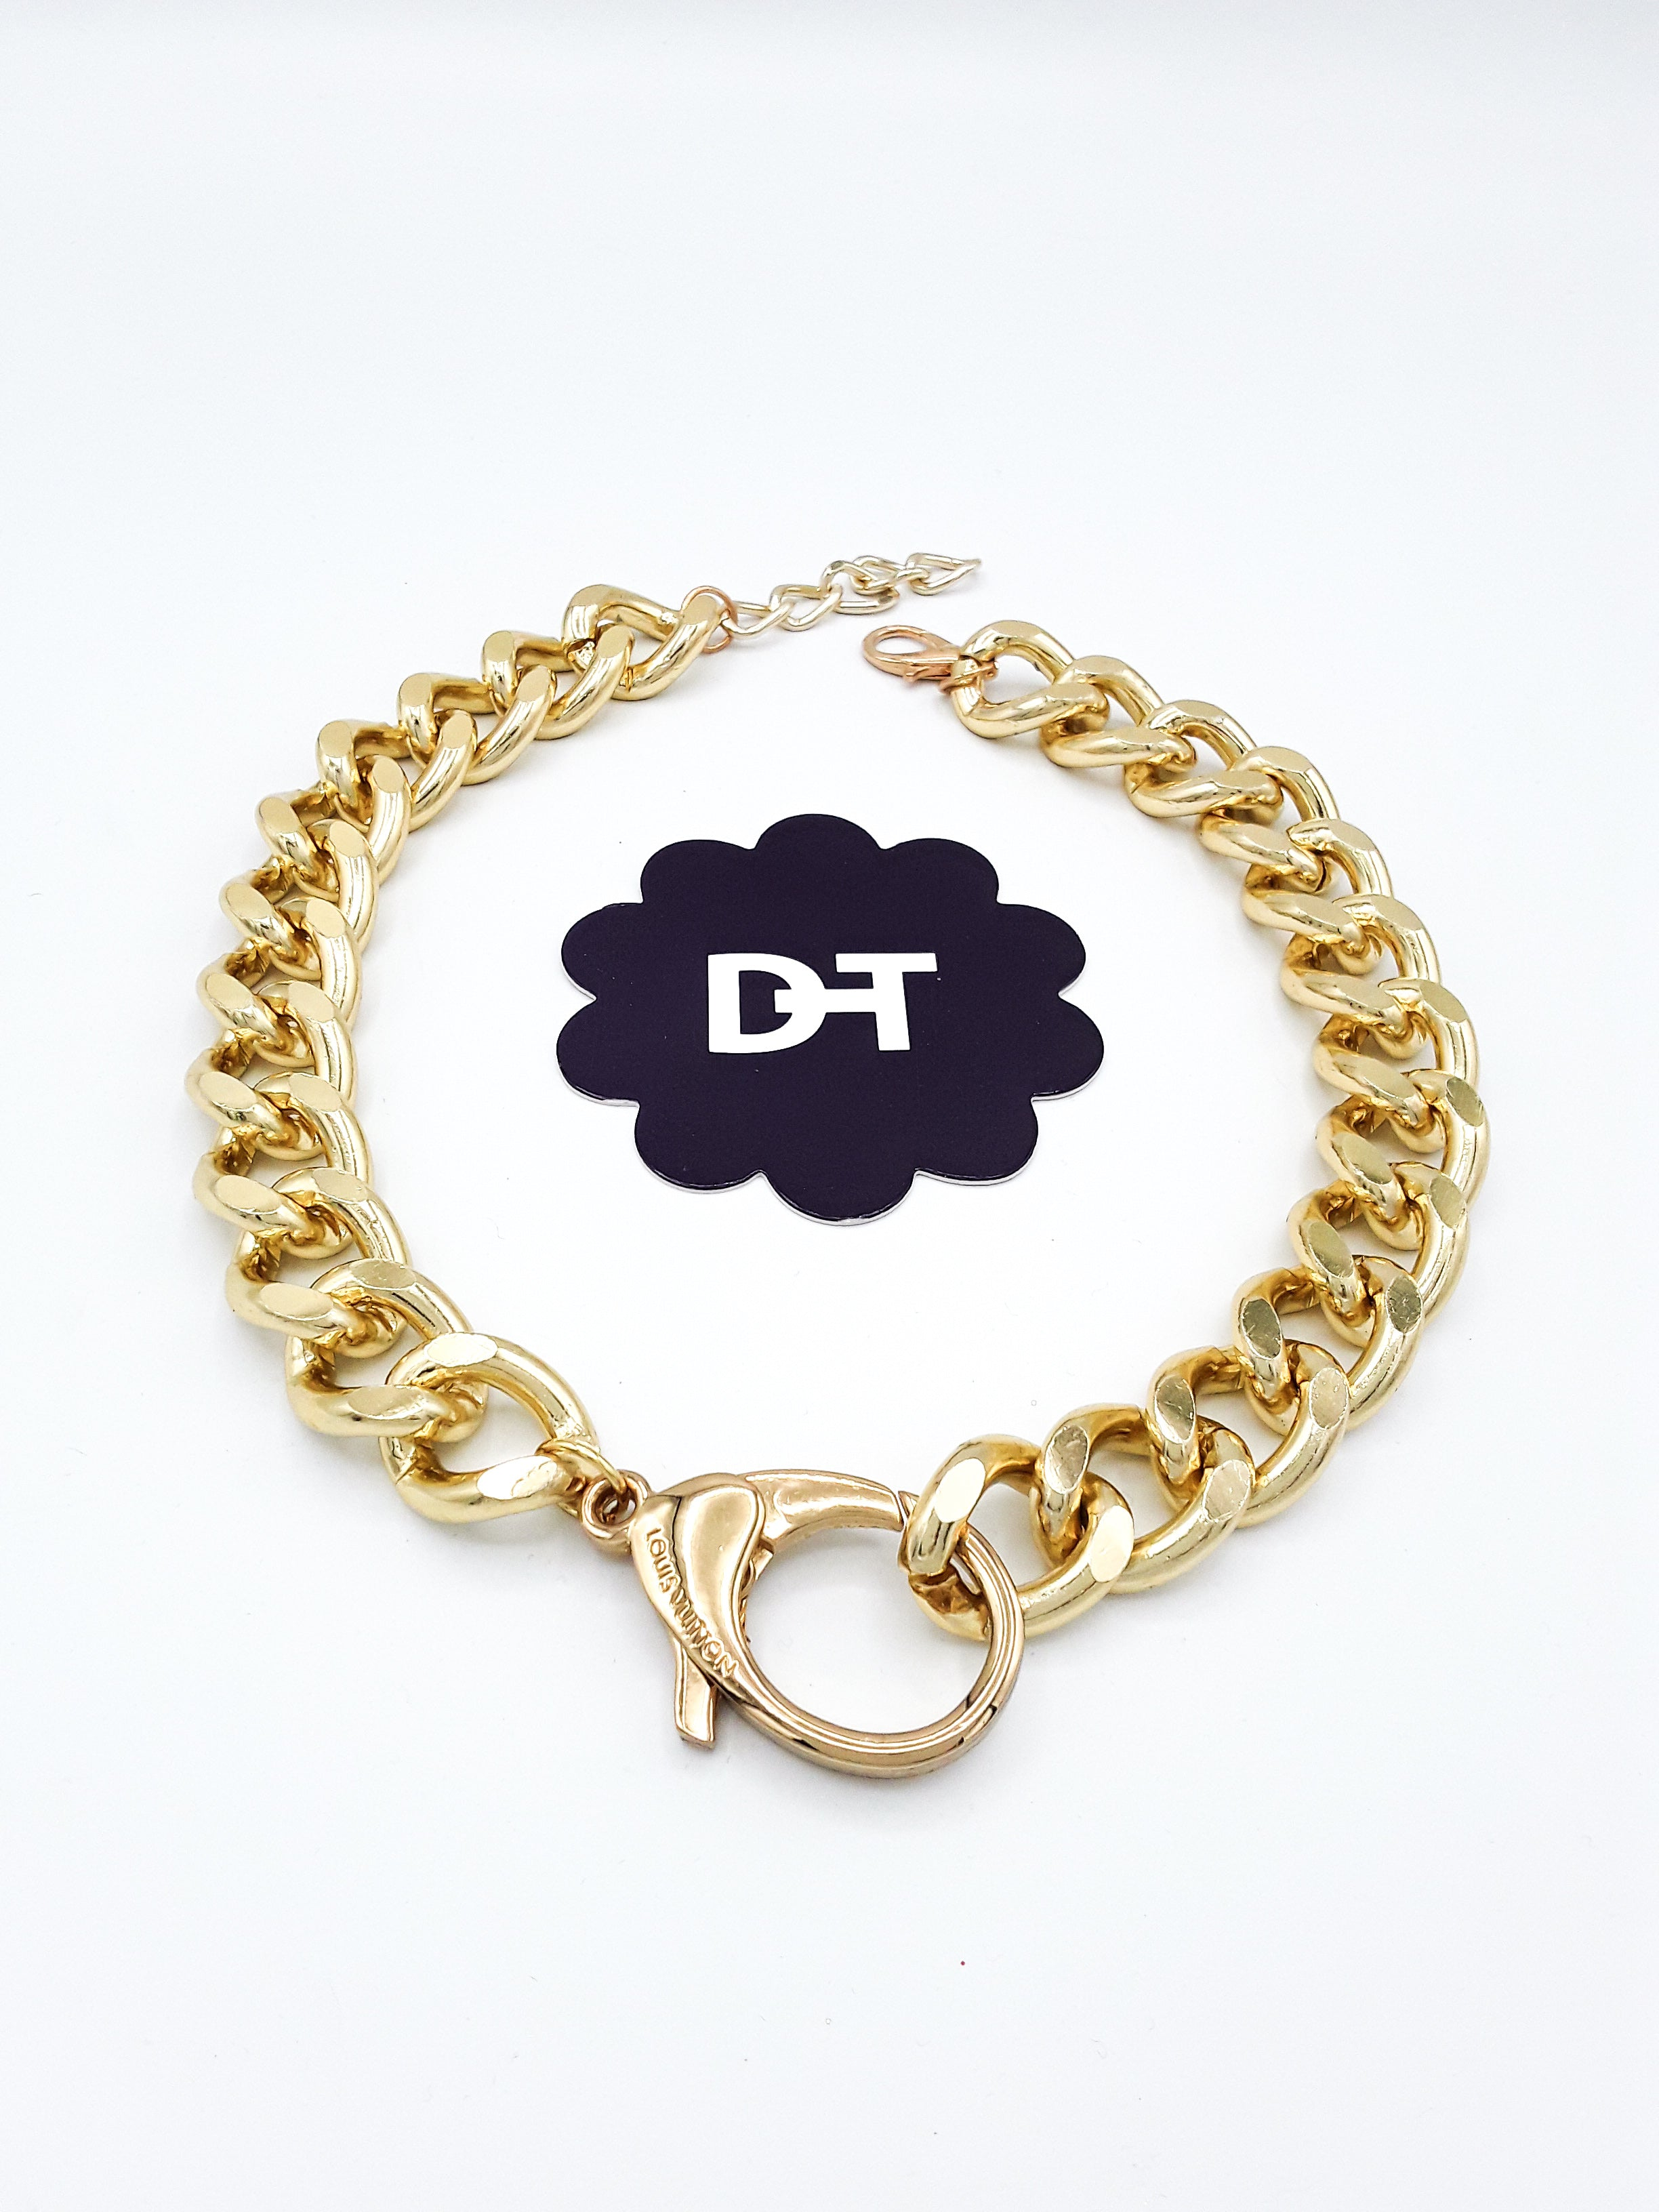 Dramatic Bag Charm Choker-Style Necklace